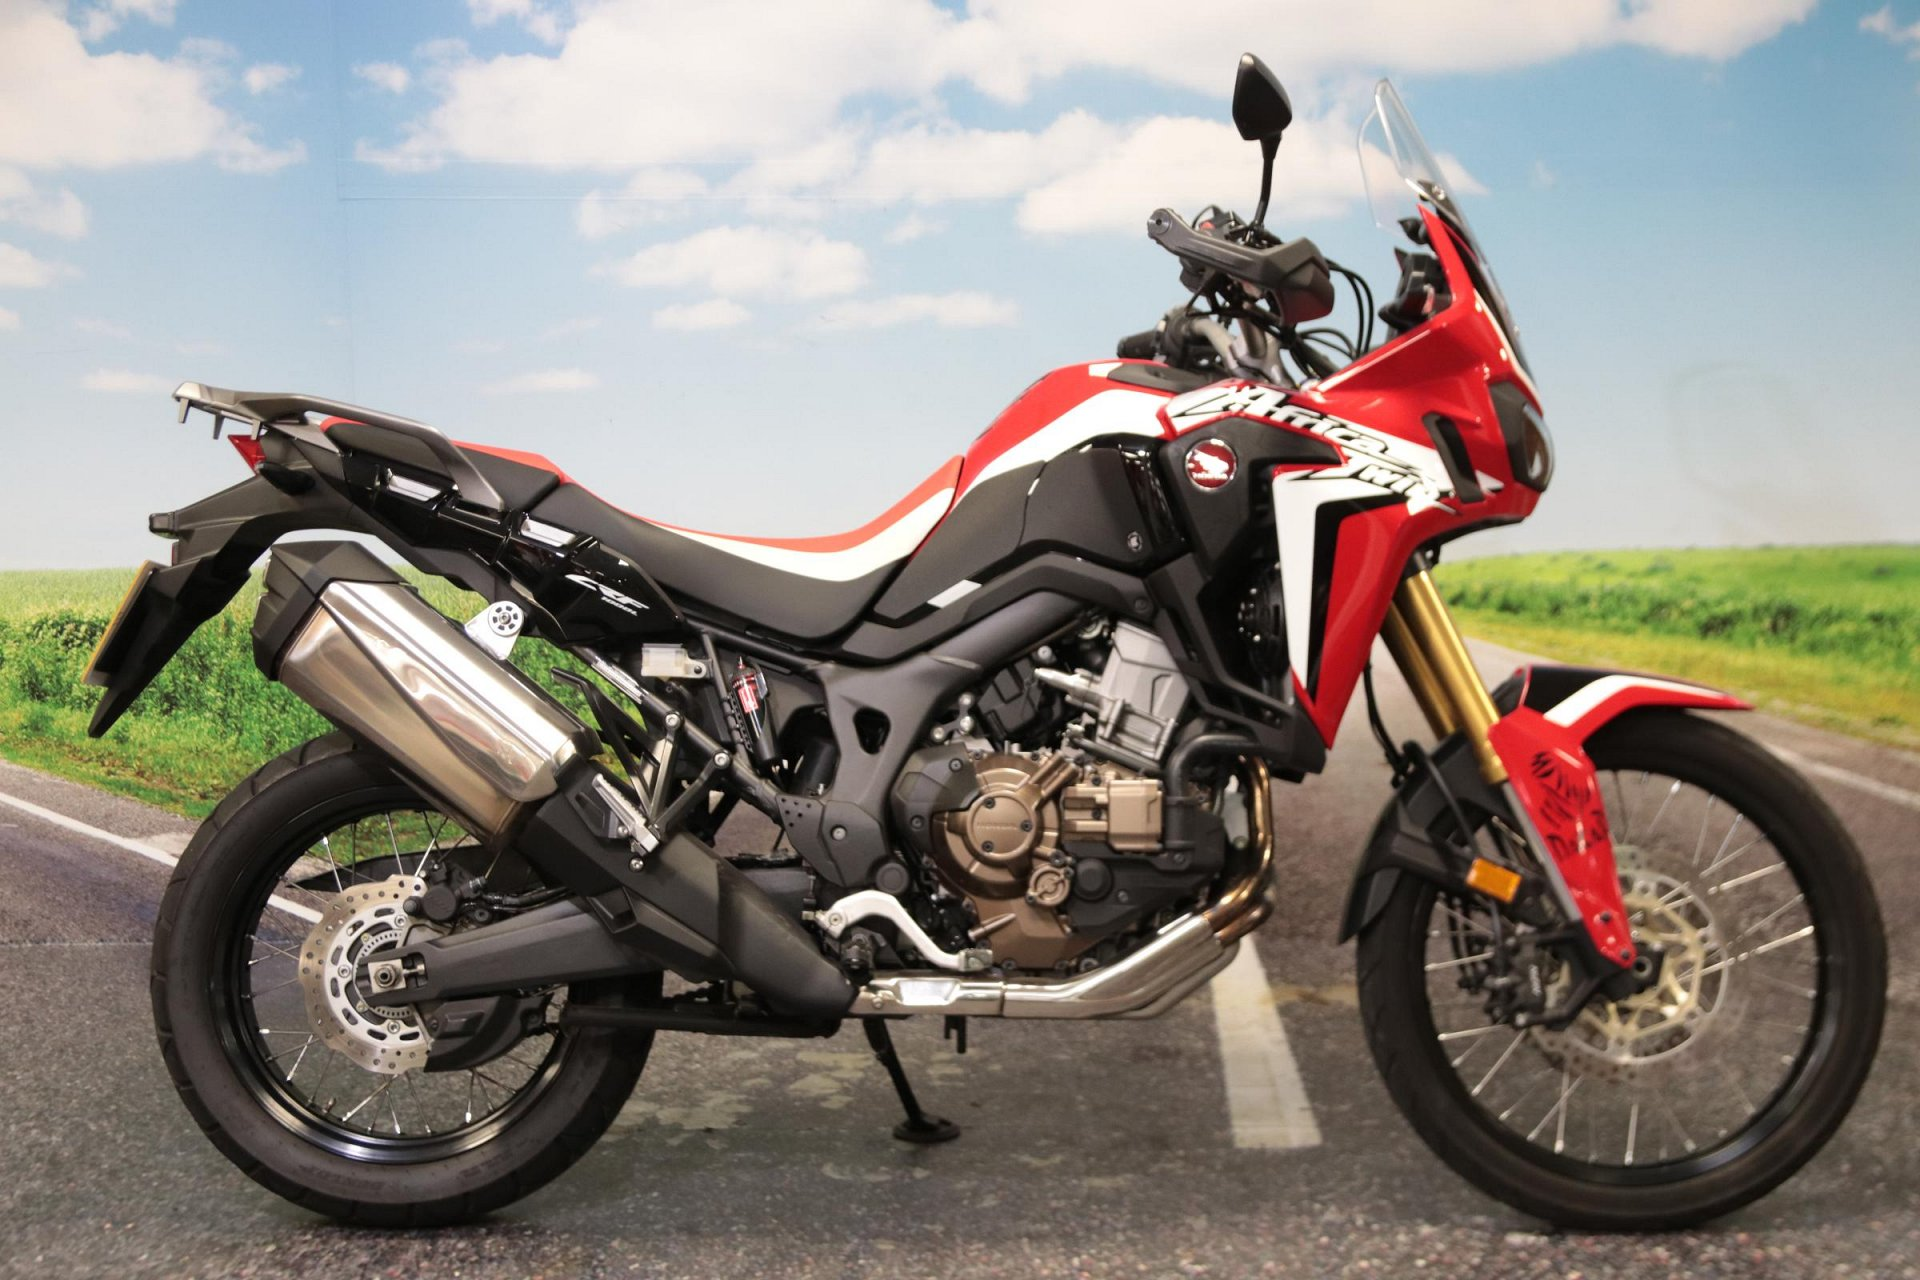 2017 Honda CRF 1000 D-H for sale in South Wales